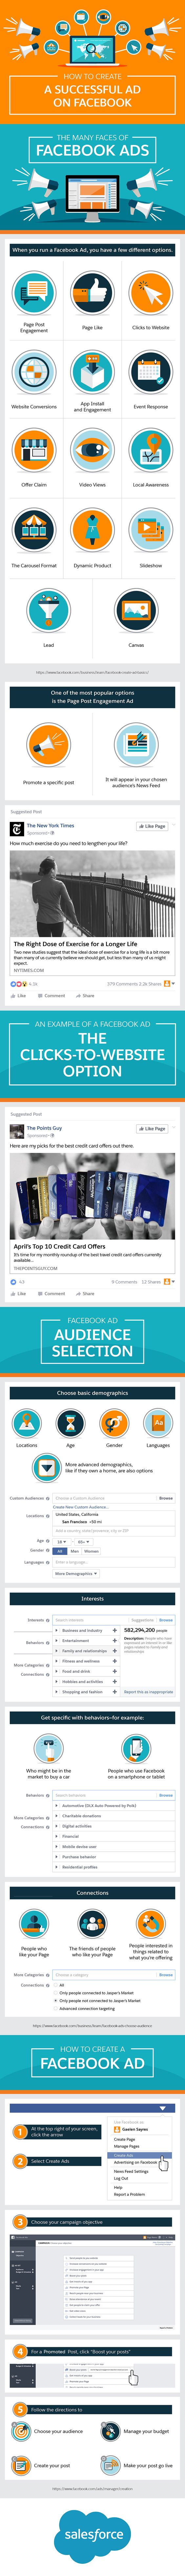 The Complete Guide to Getting Started with Facebook Ads - infographic